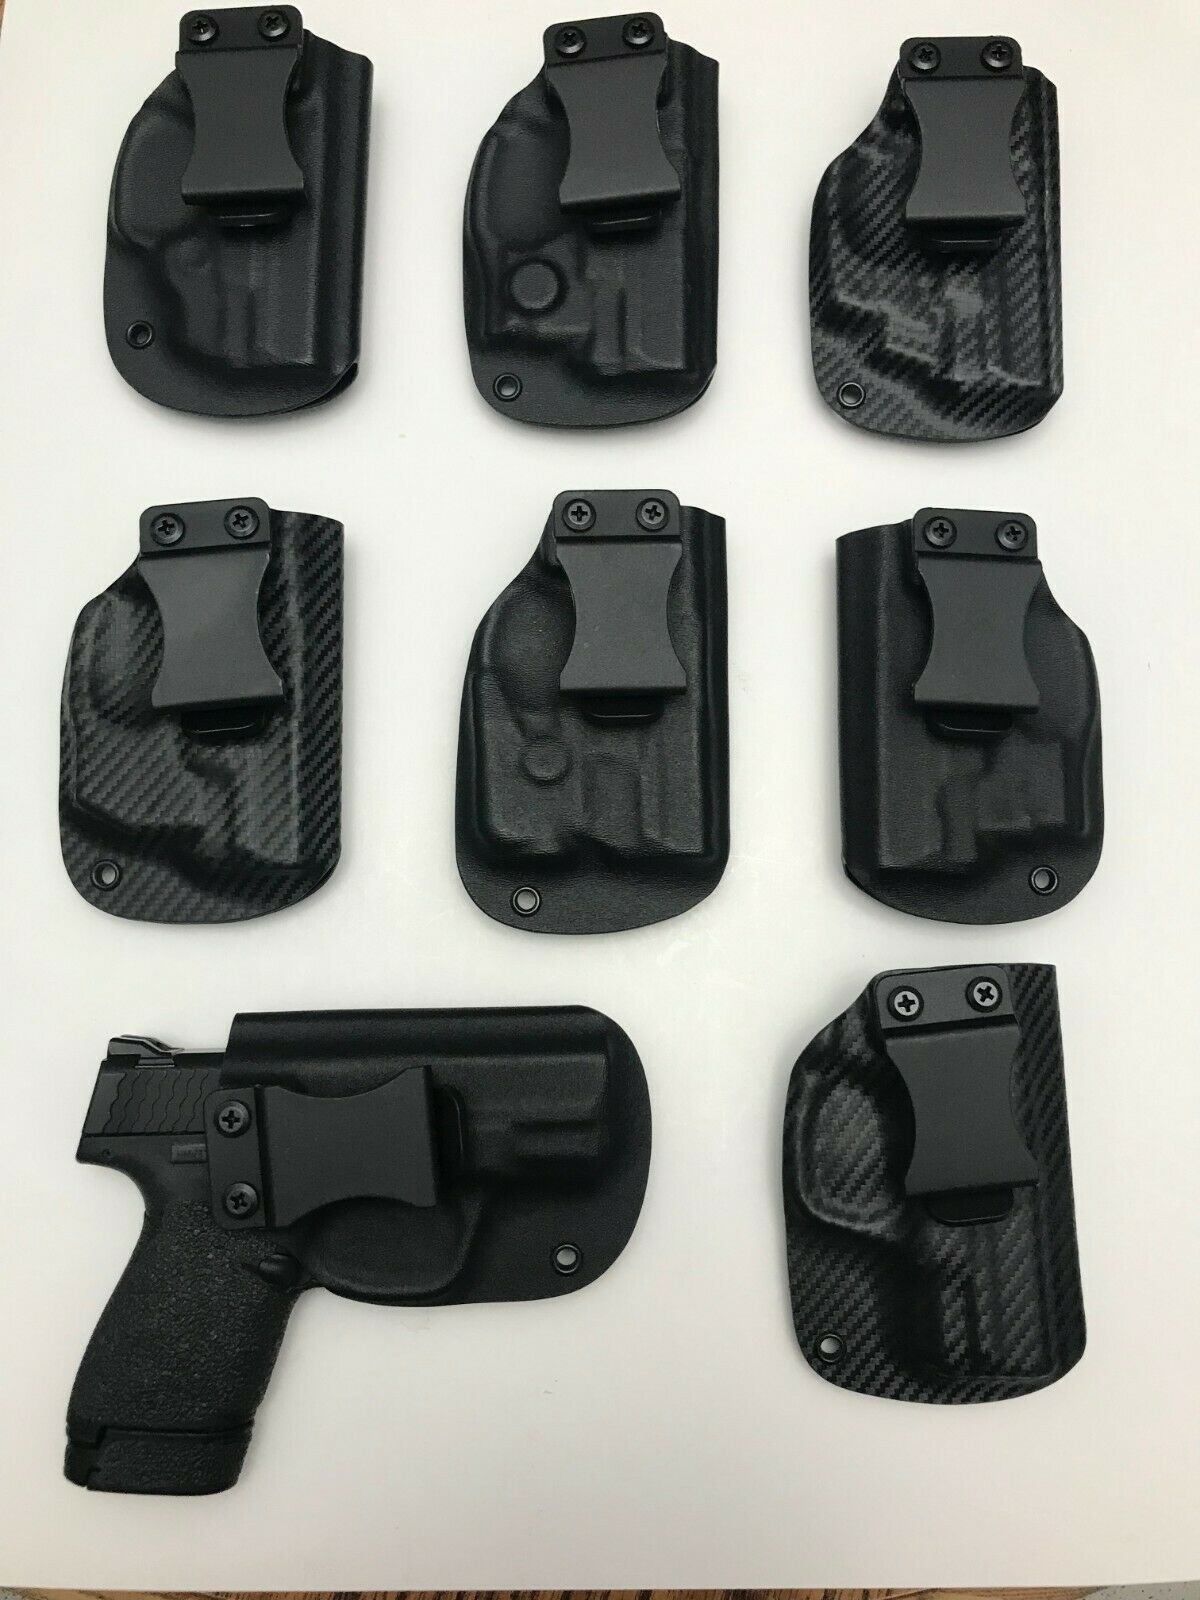 IWB concealment holster for Glock G48 with laser or light